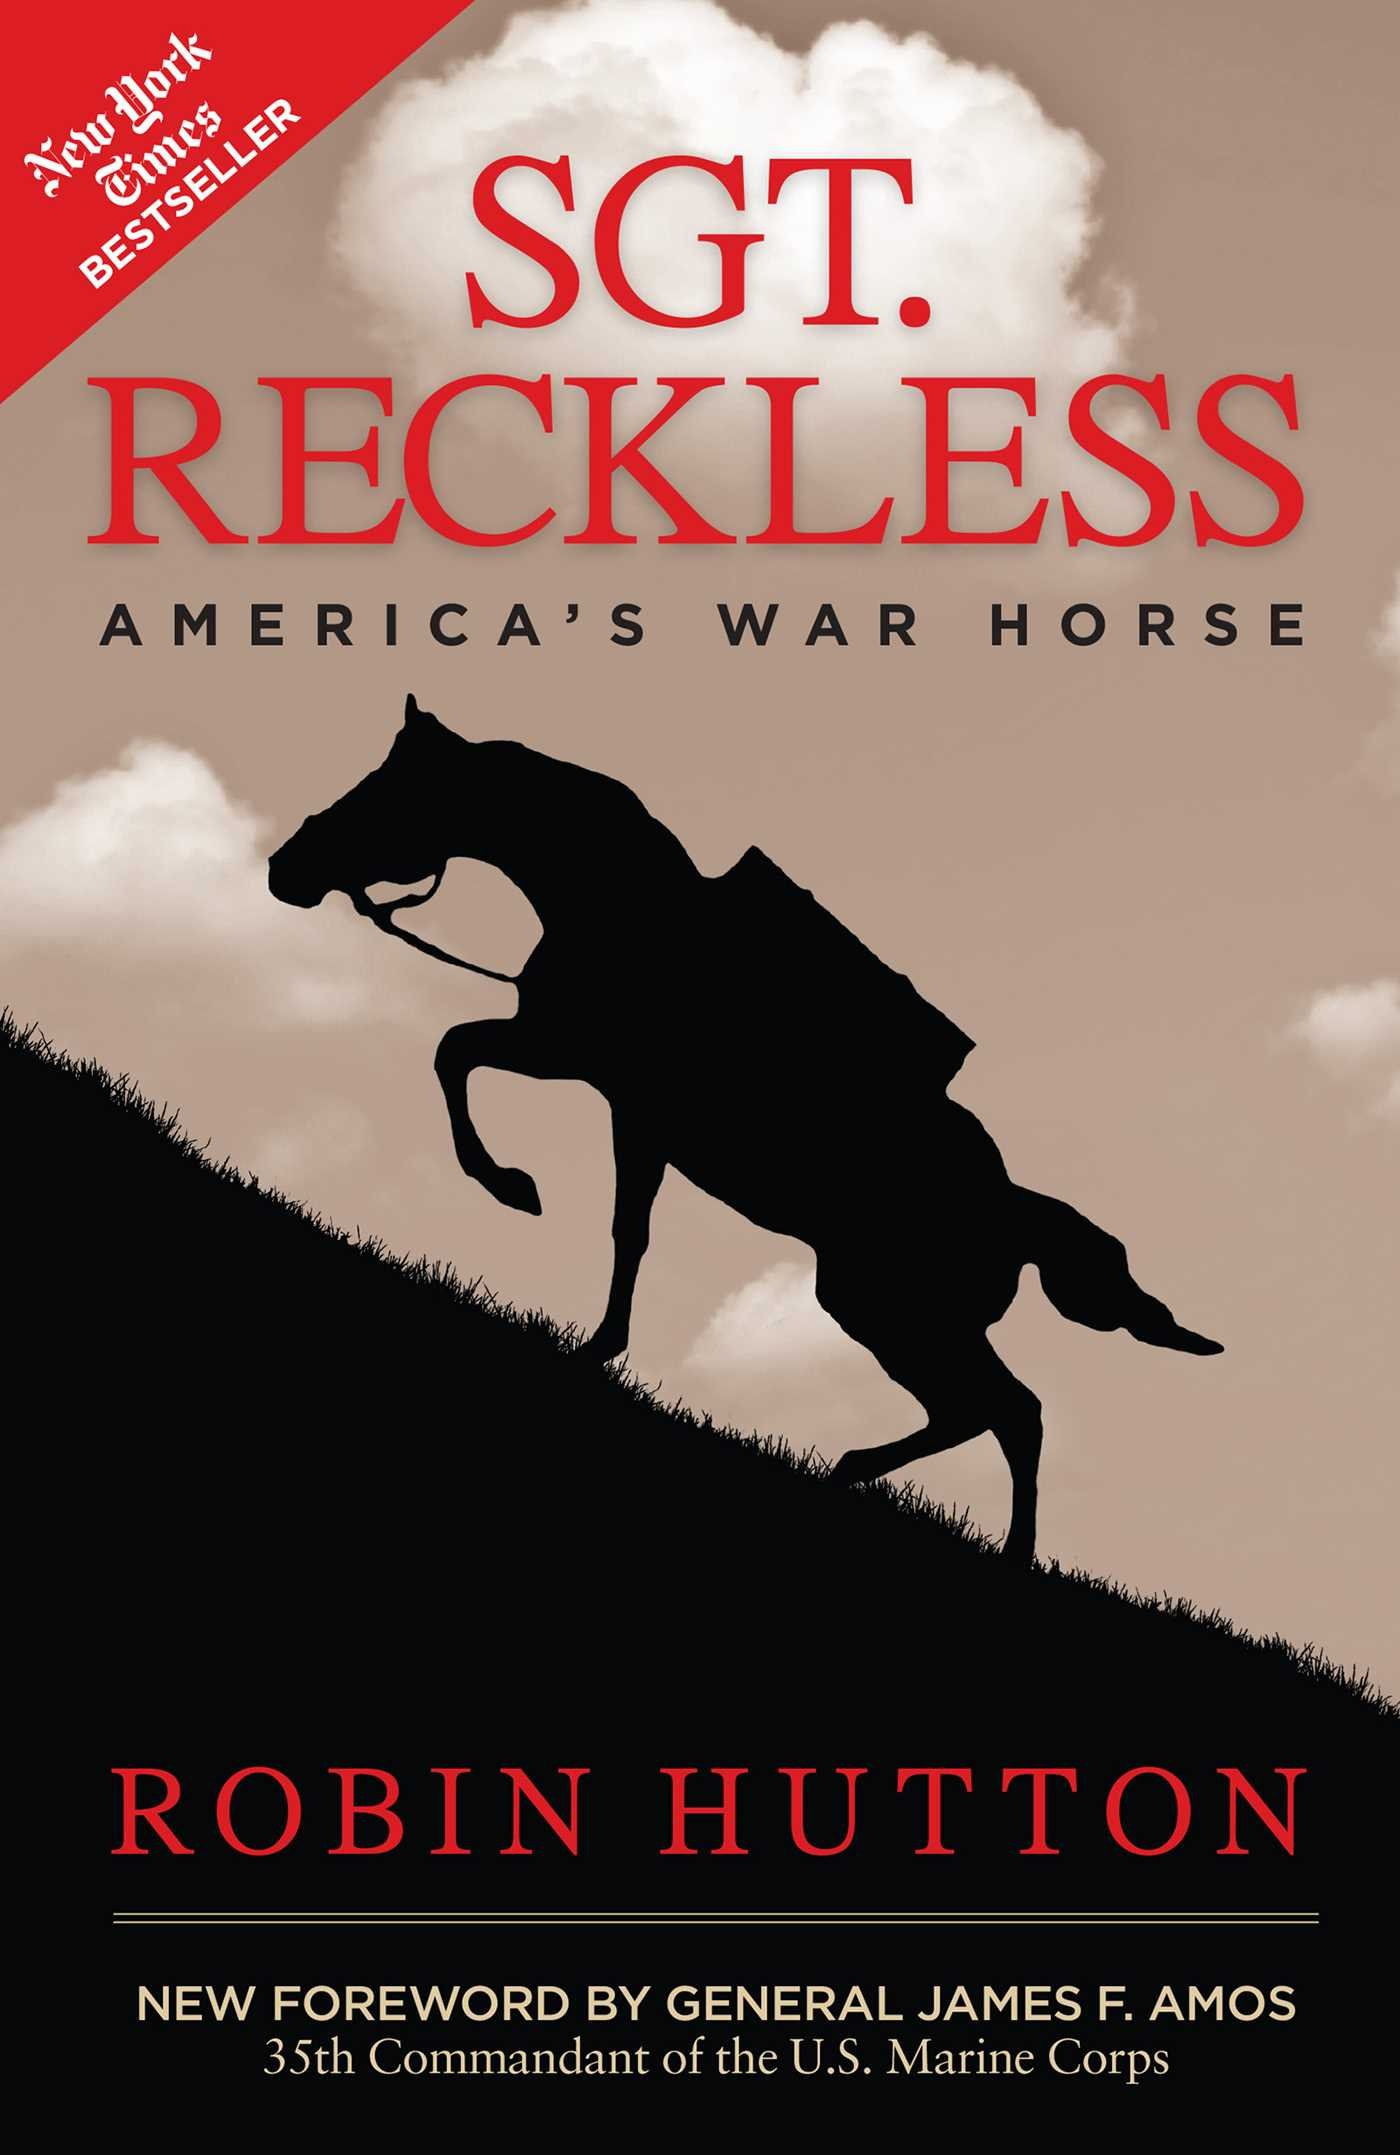 Image result for sgt reckless robin hutton